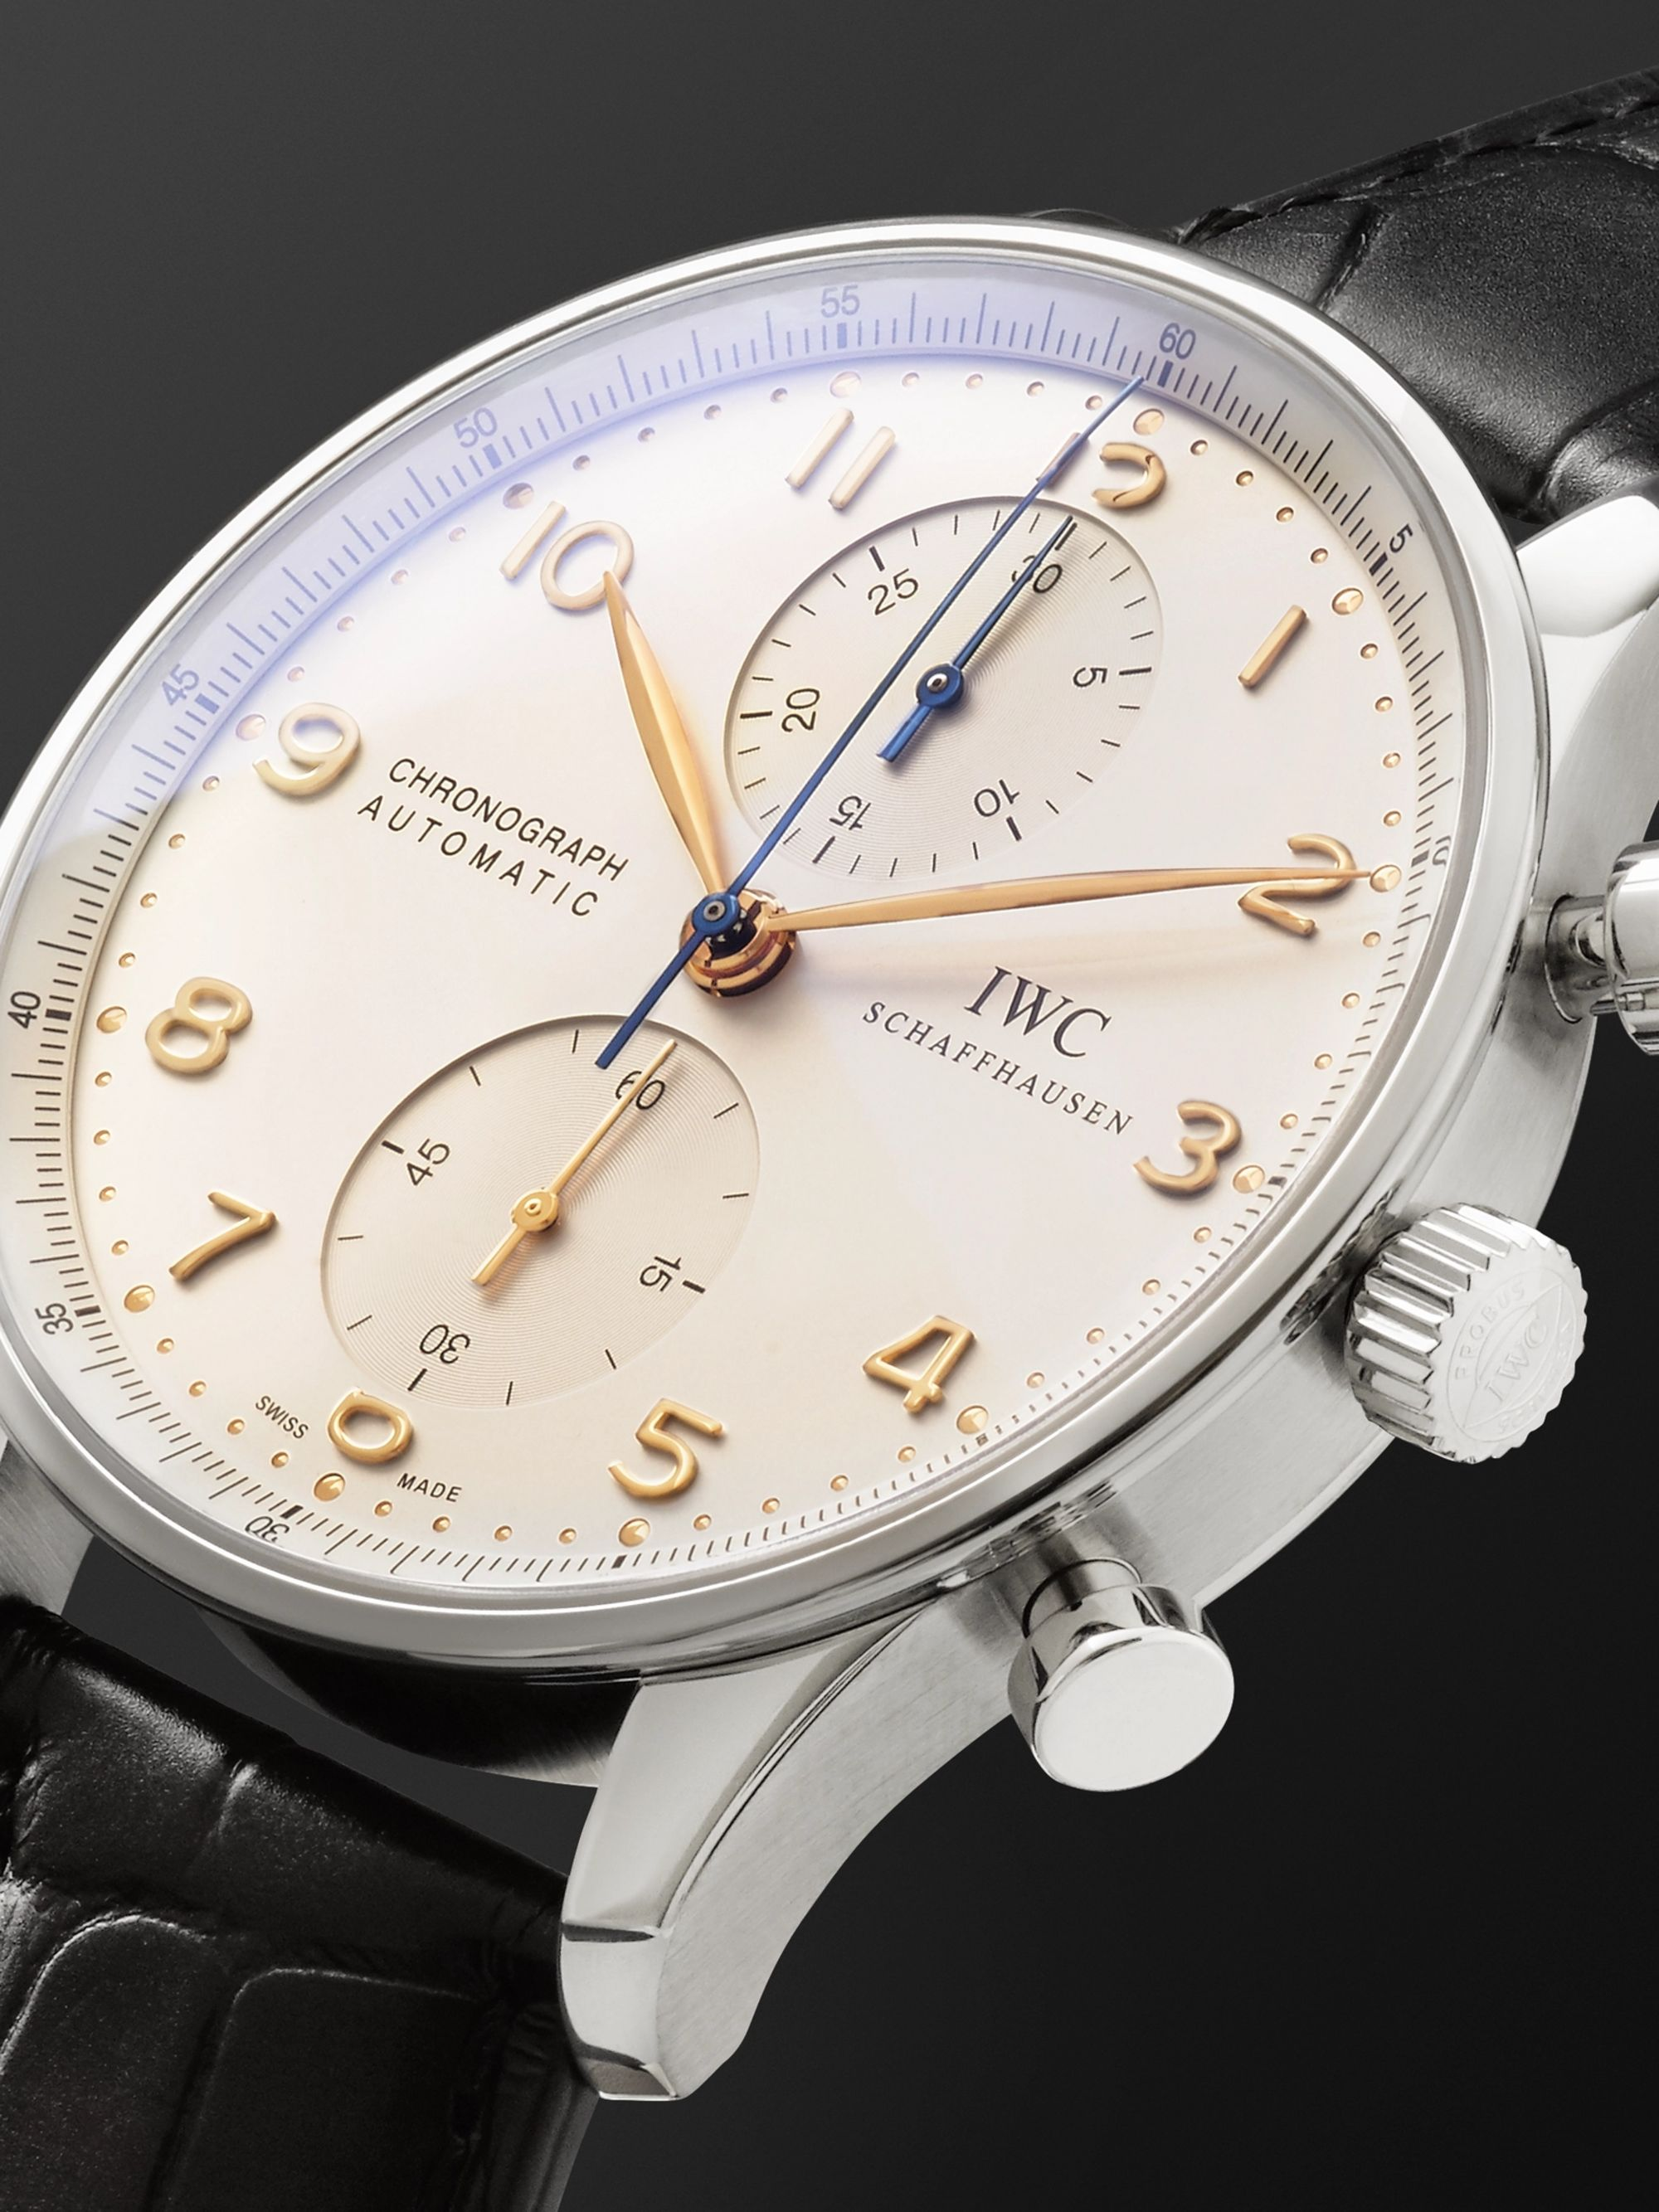 IWC SCHAFFHAUSEN Portugieser Automatic Chronograph 40.9mm Stainless Steel and Alligator Watch, Ref. No. IW371445